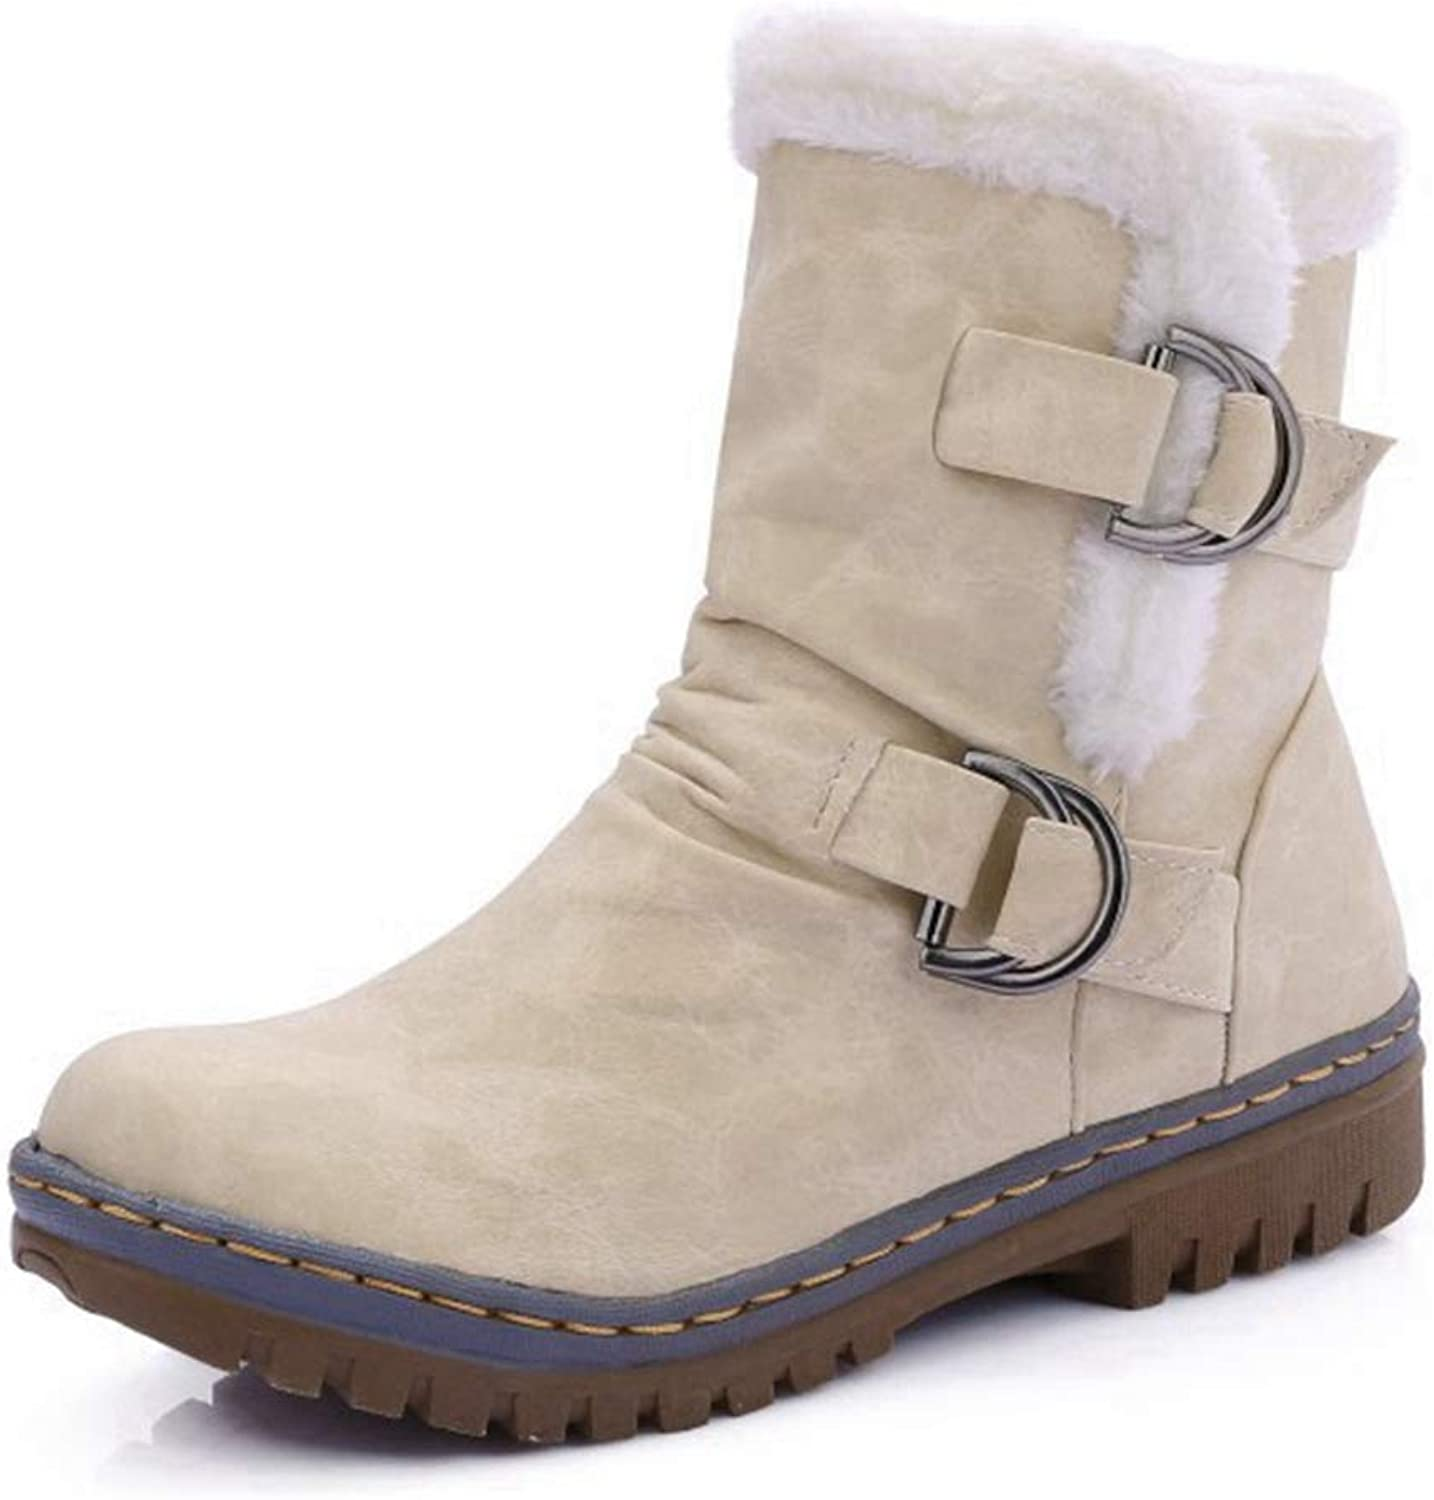 CYBLING Women's Fashion Flat Heel Ankle Booties Side Buckled Outdoor Warm Winter Snow Boots